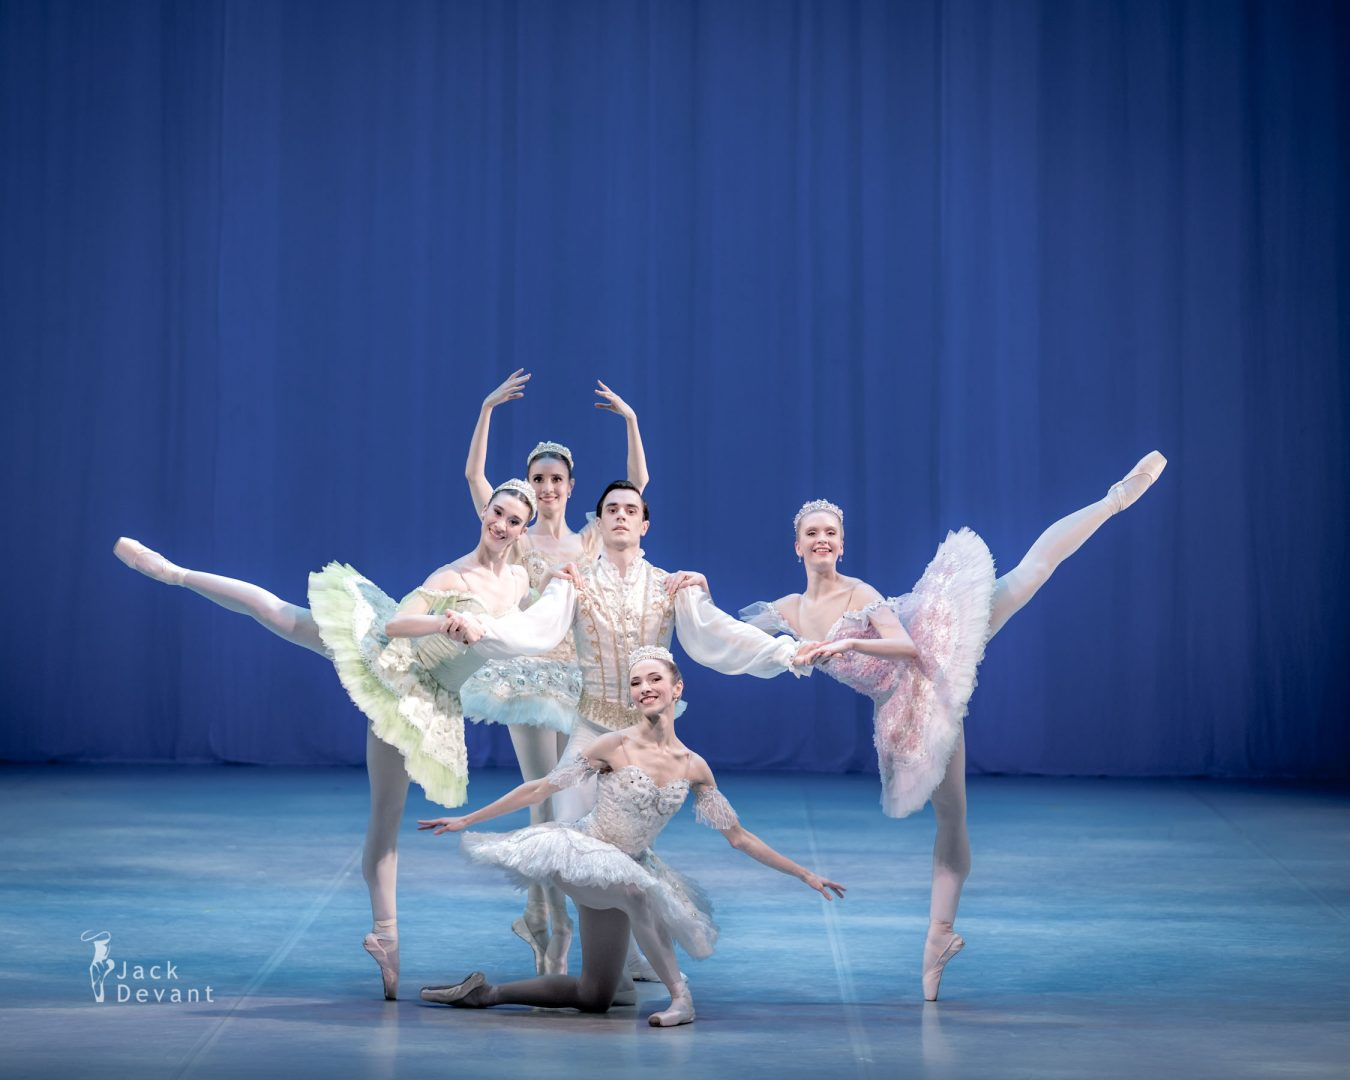 Raminta Rudžionyte, Lawrence Massie, Alexandra Foyen, Laura Quin and Amy Bowring in the pas de cinq vanemuine ballet